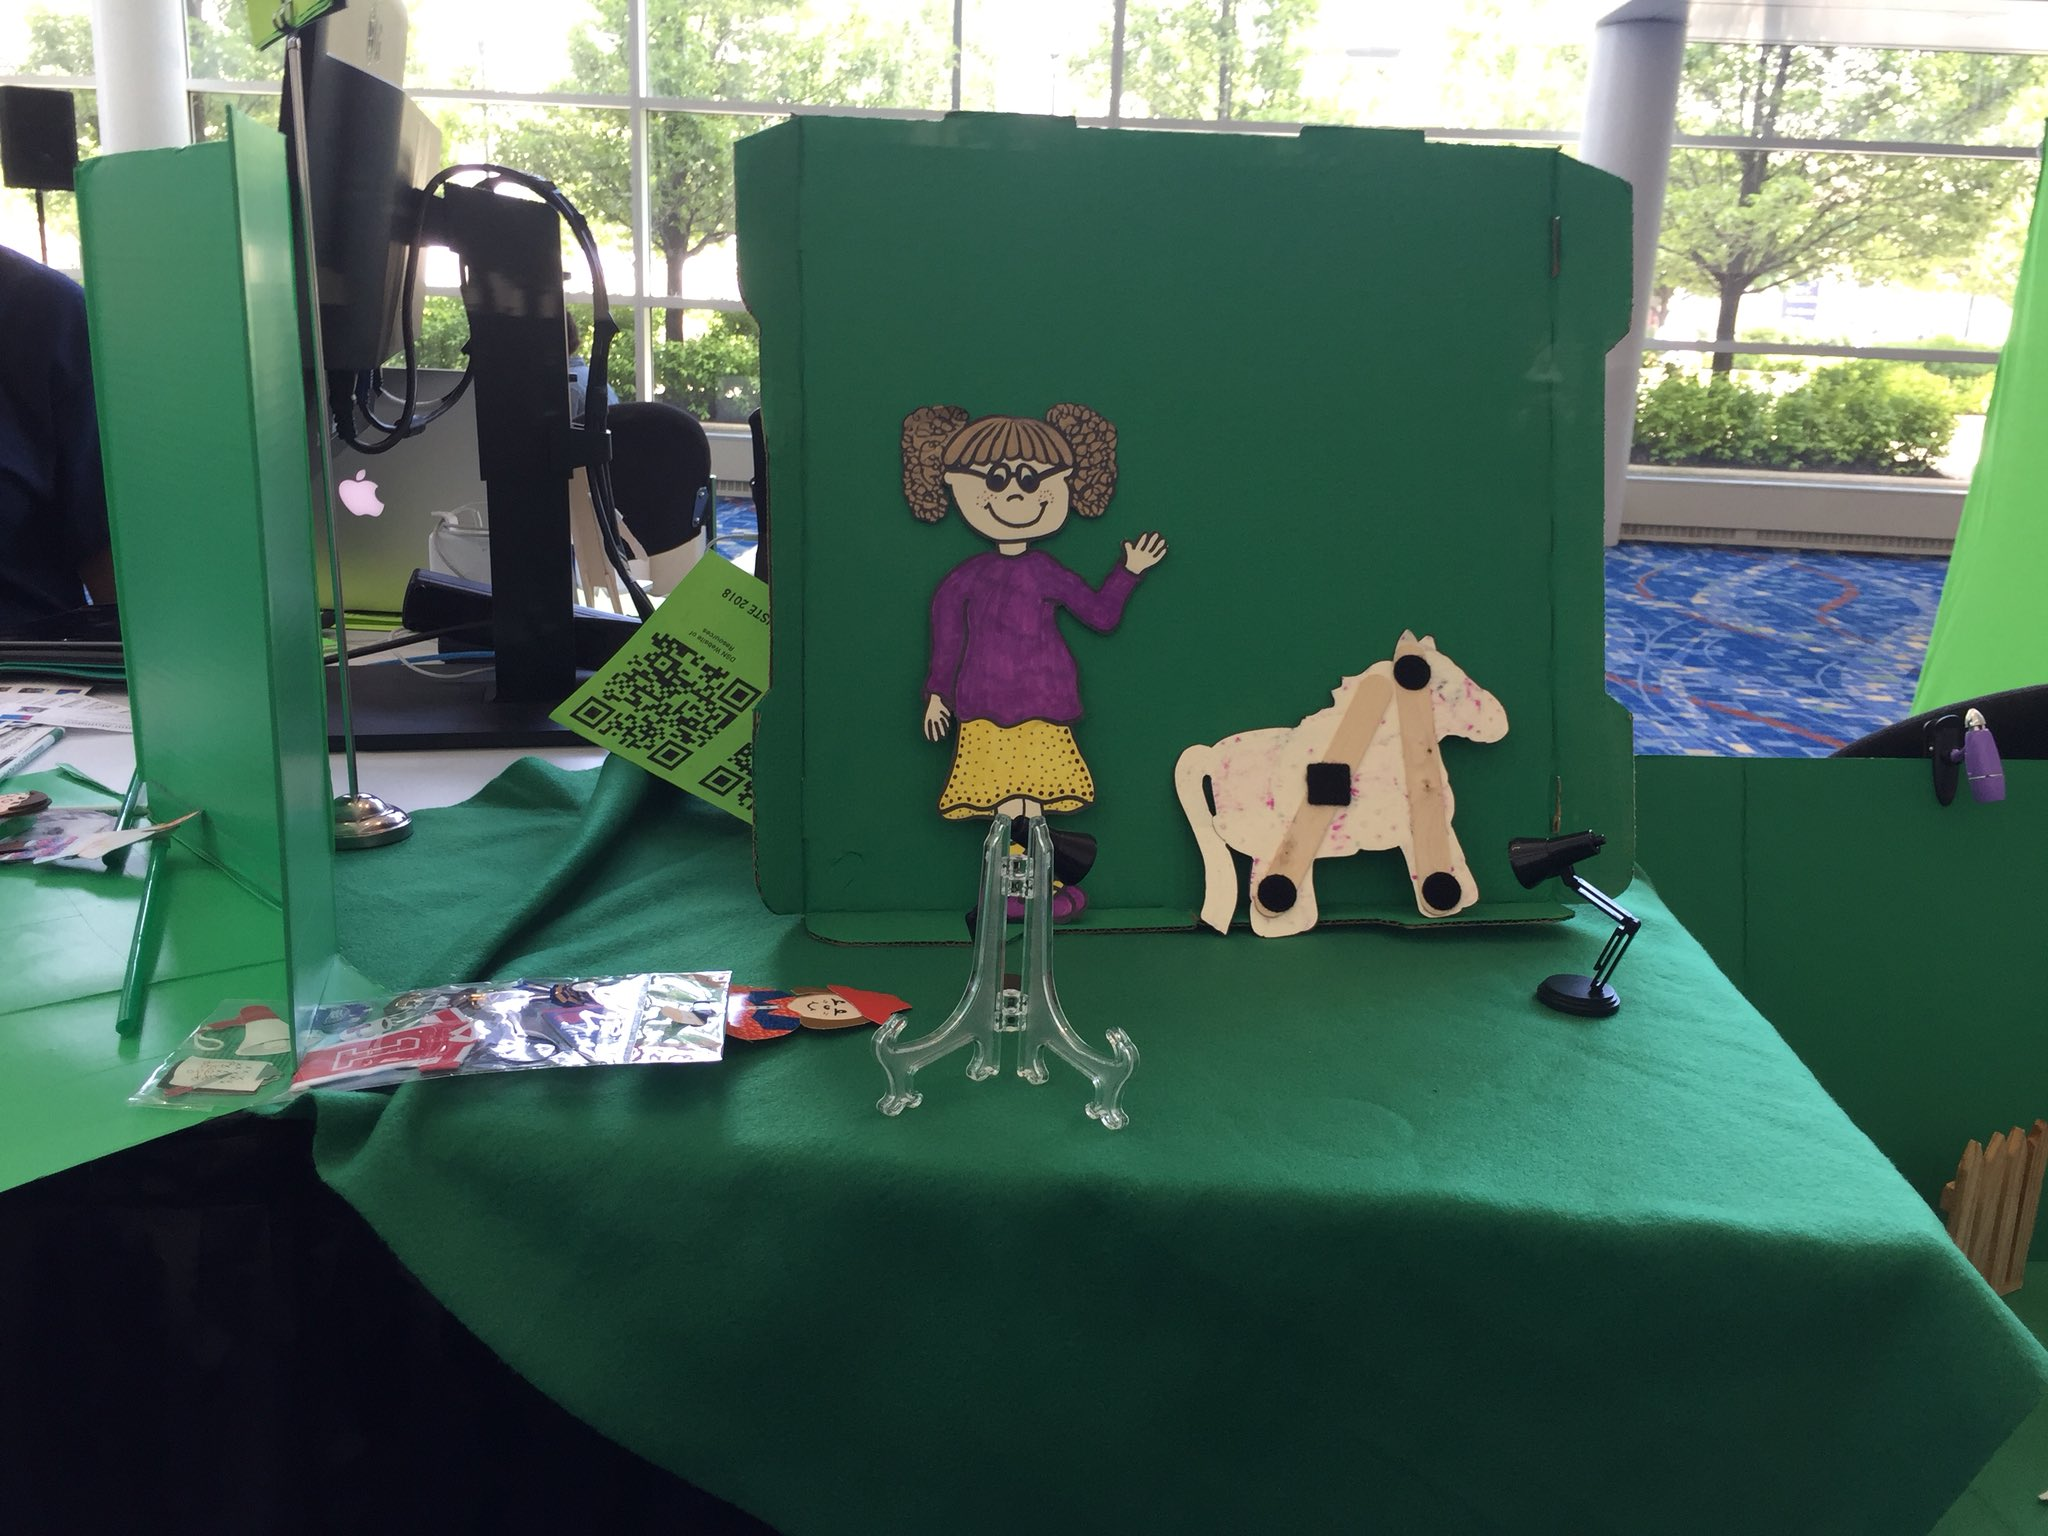 So excited to implement digital storytelling next year with Doink! #ISTE2018 #BangBears https://t.co/rji265Dwju